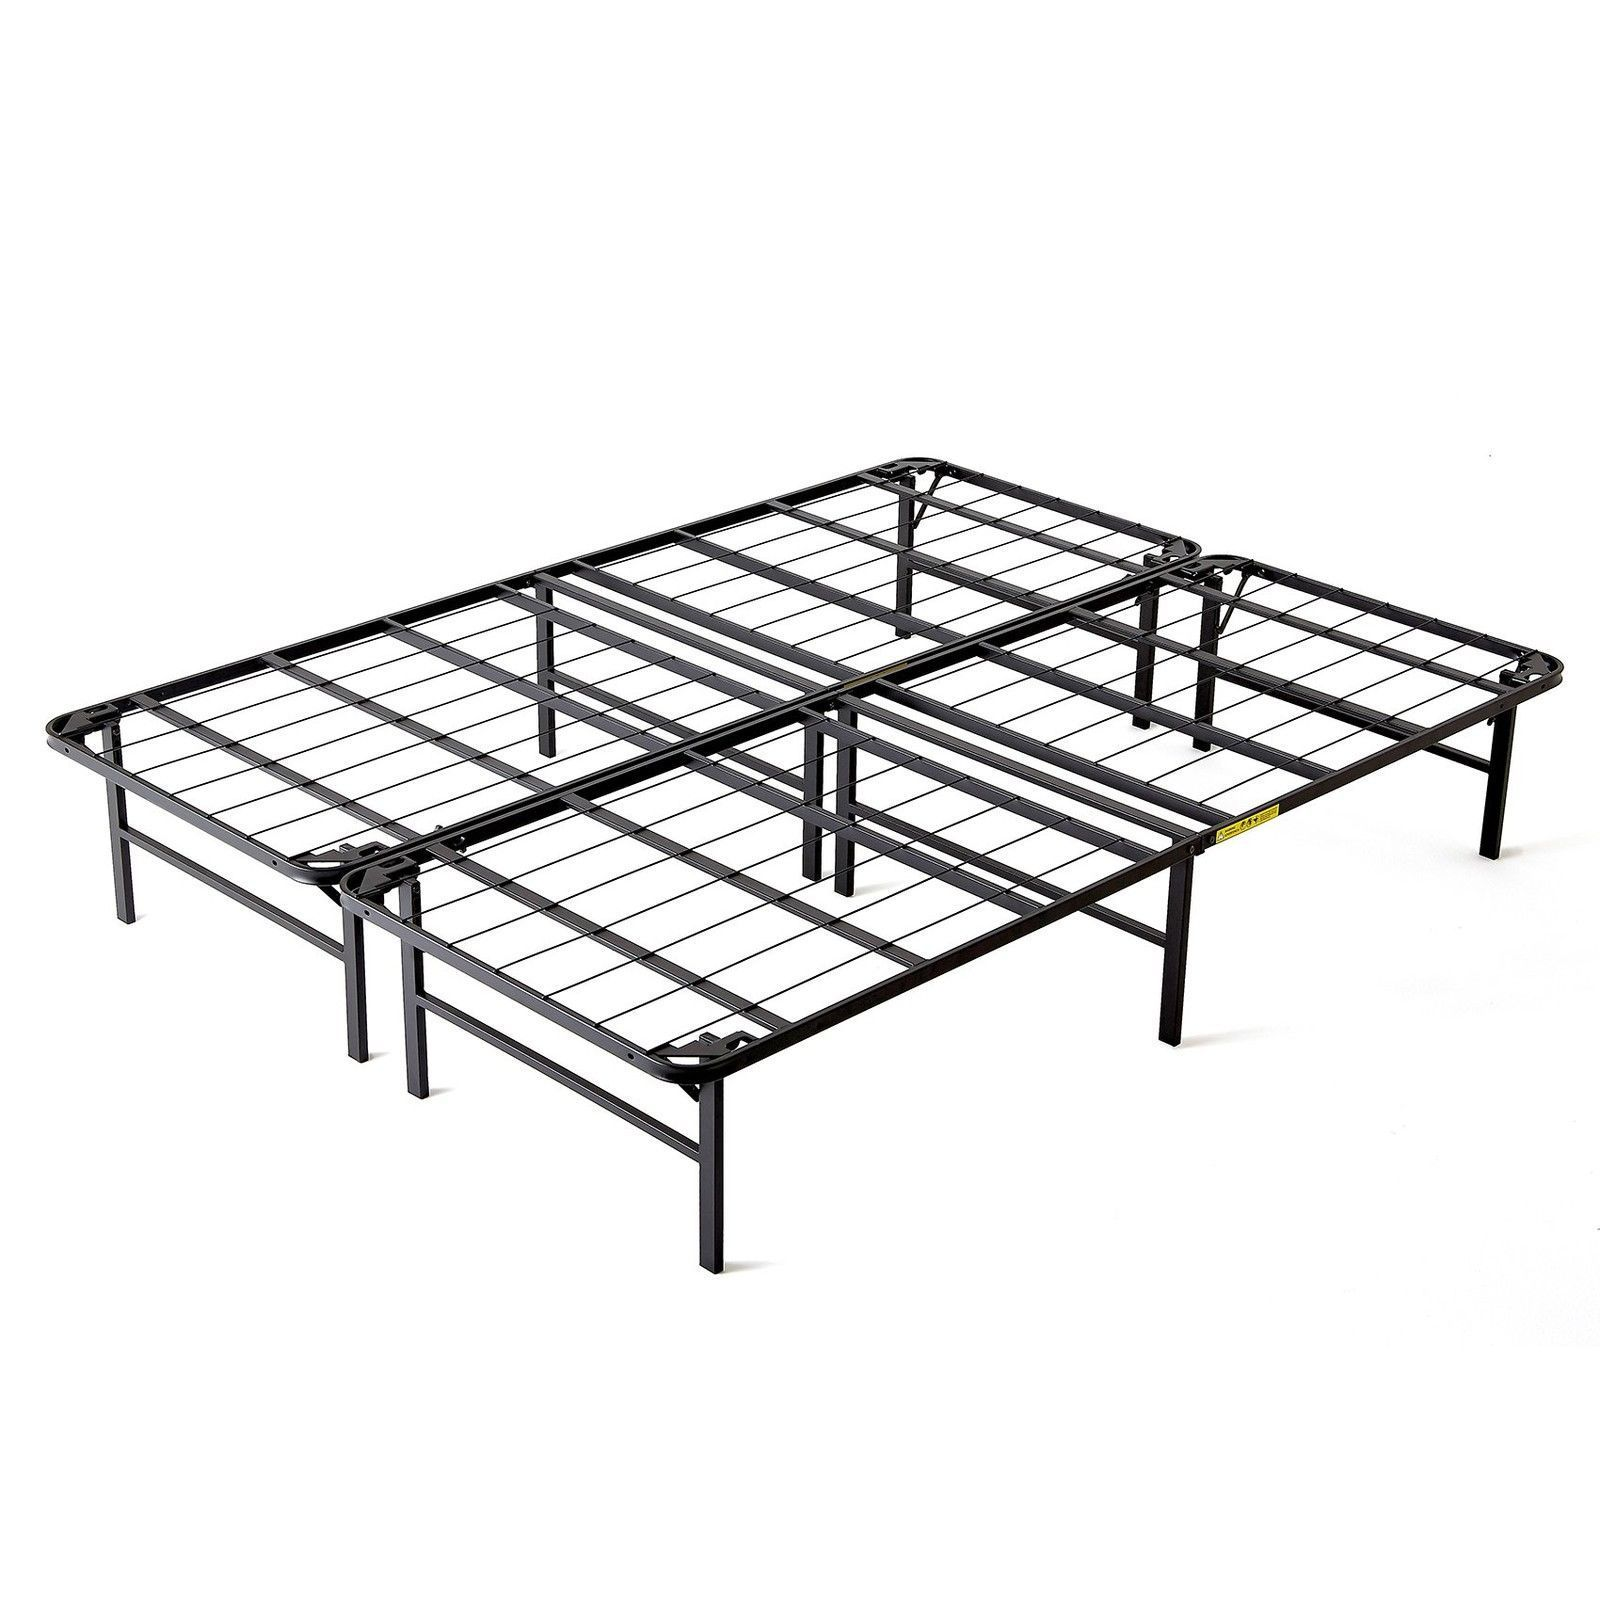 Pin By Aeoffers Com On Amazing Shopping Offers Metal Platform Bed Queen Metal Bed Metal Beds